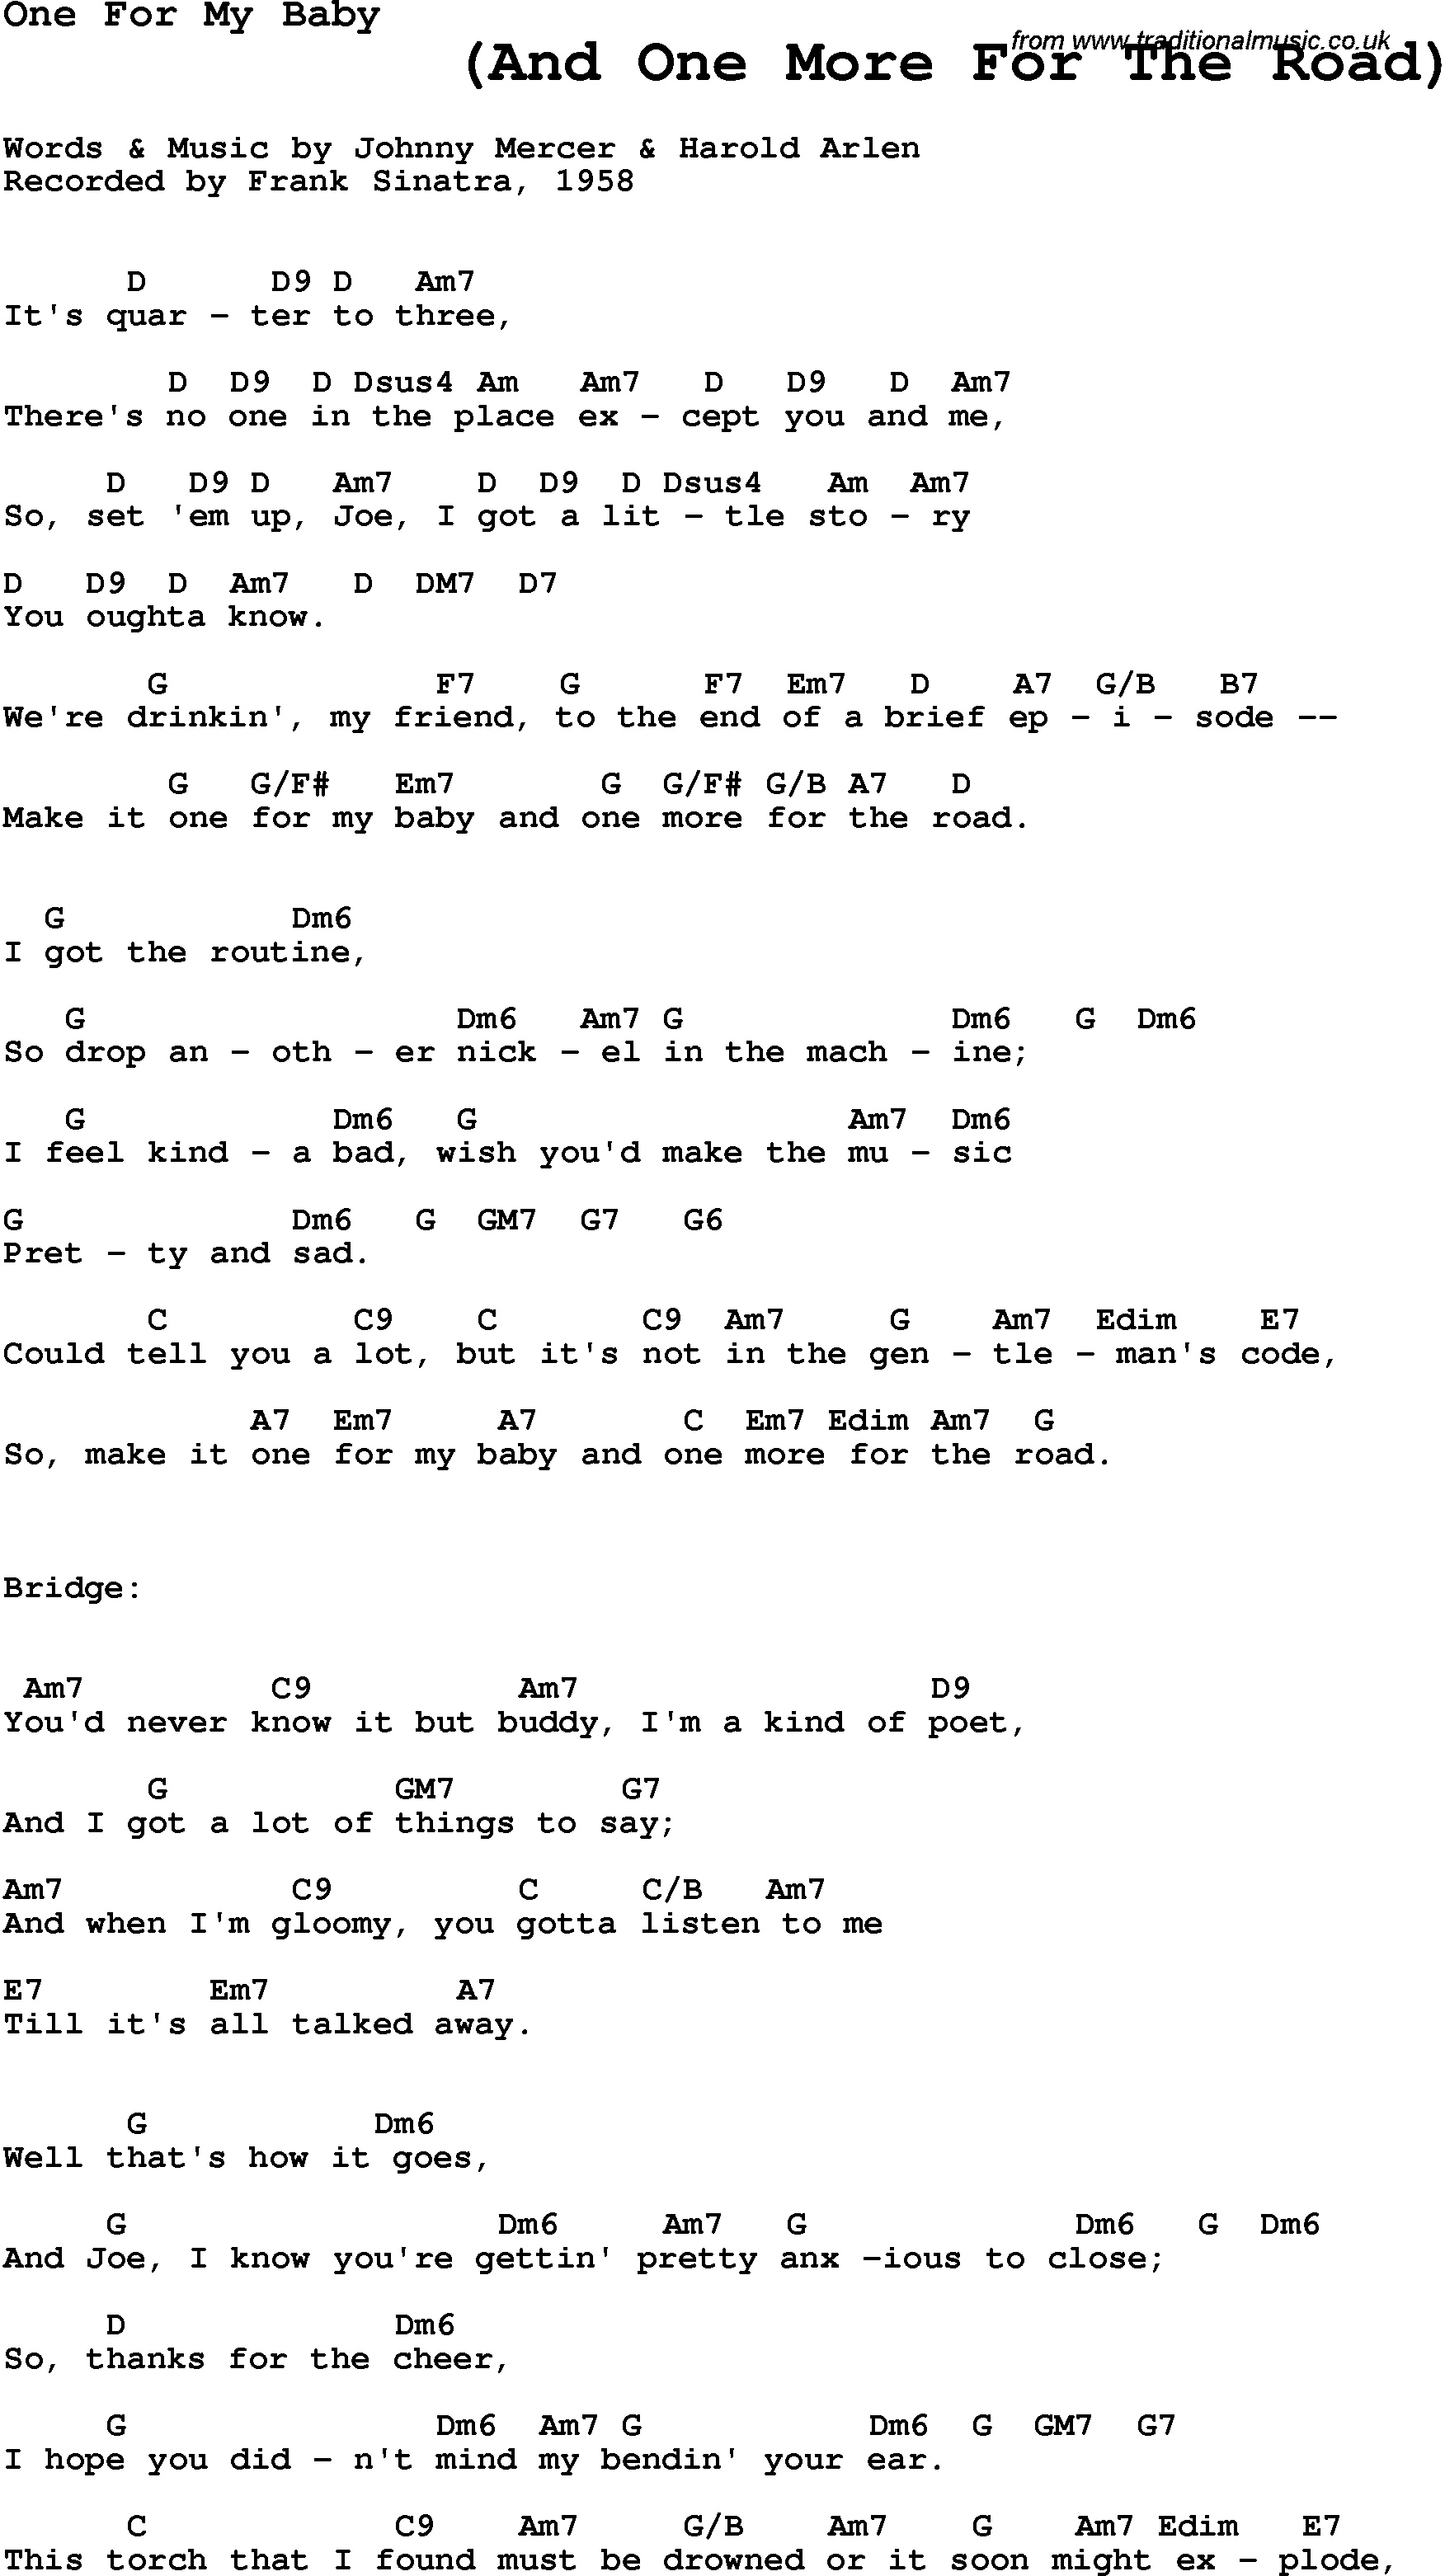 Song Lyrics With Guitar Chords For One For My Baby Frank Sinatra 1958